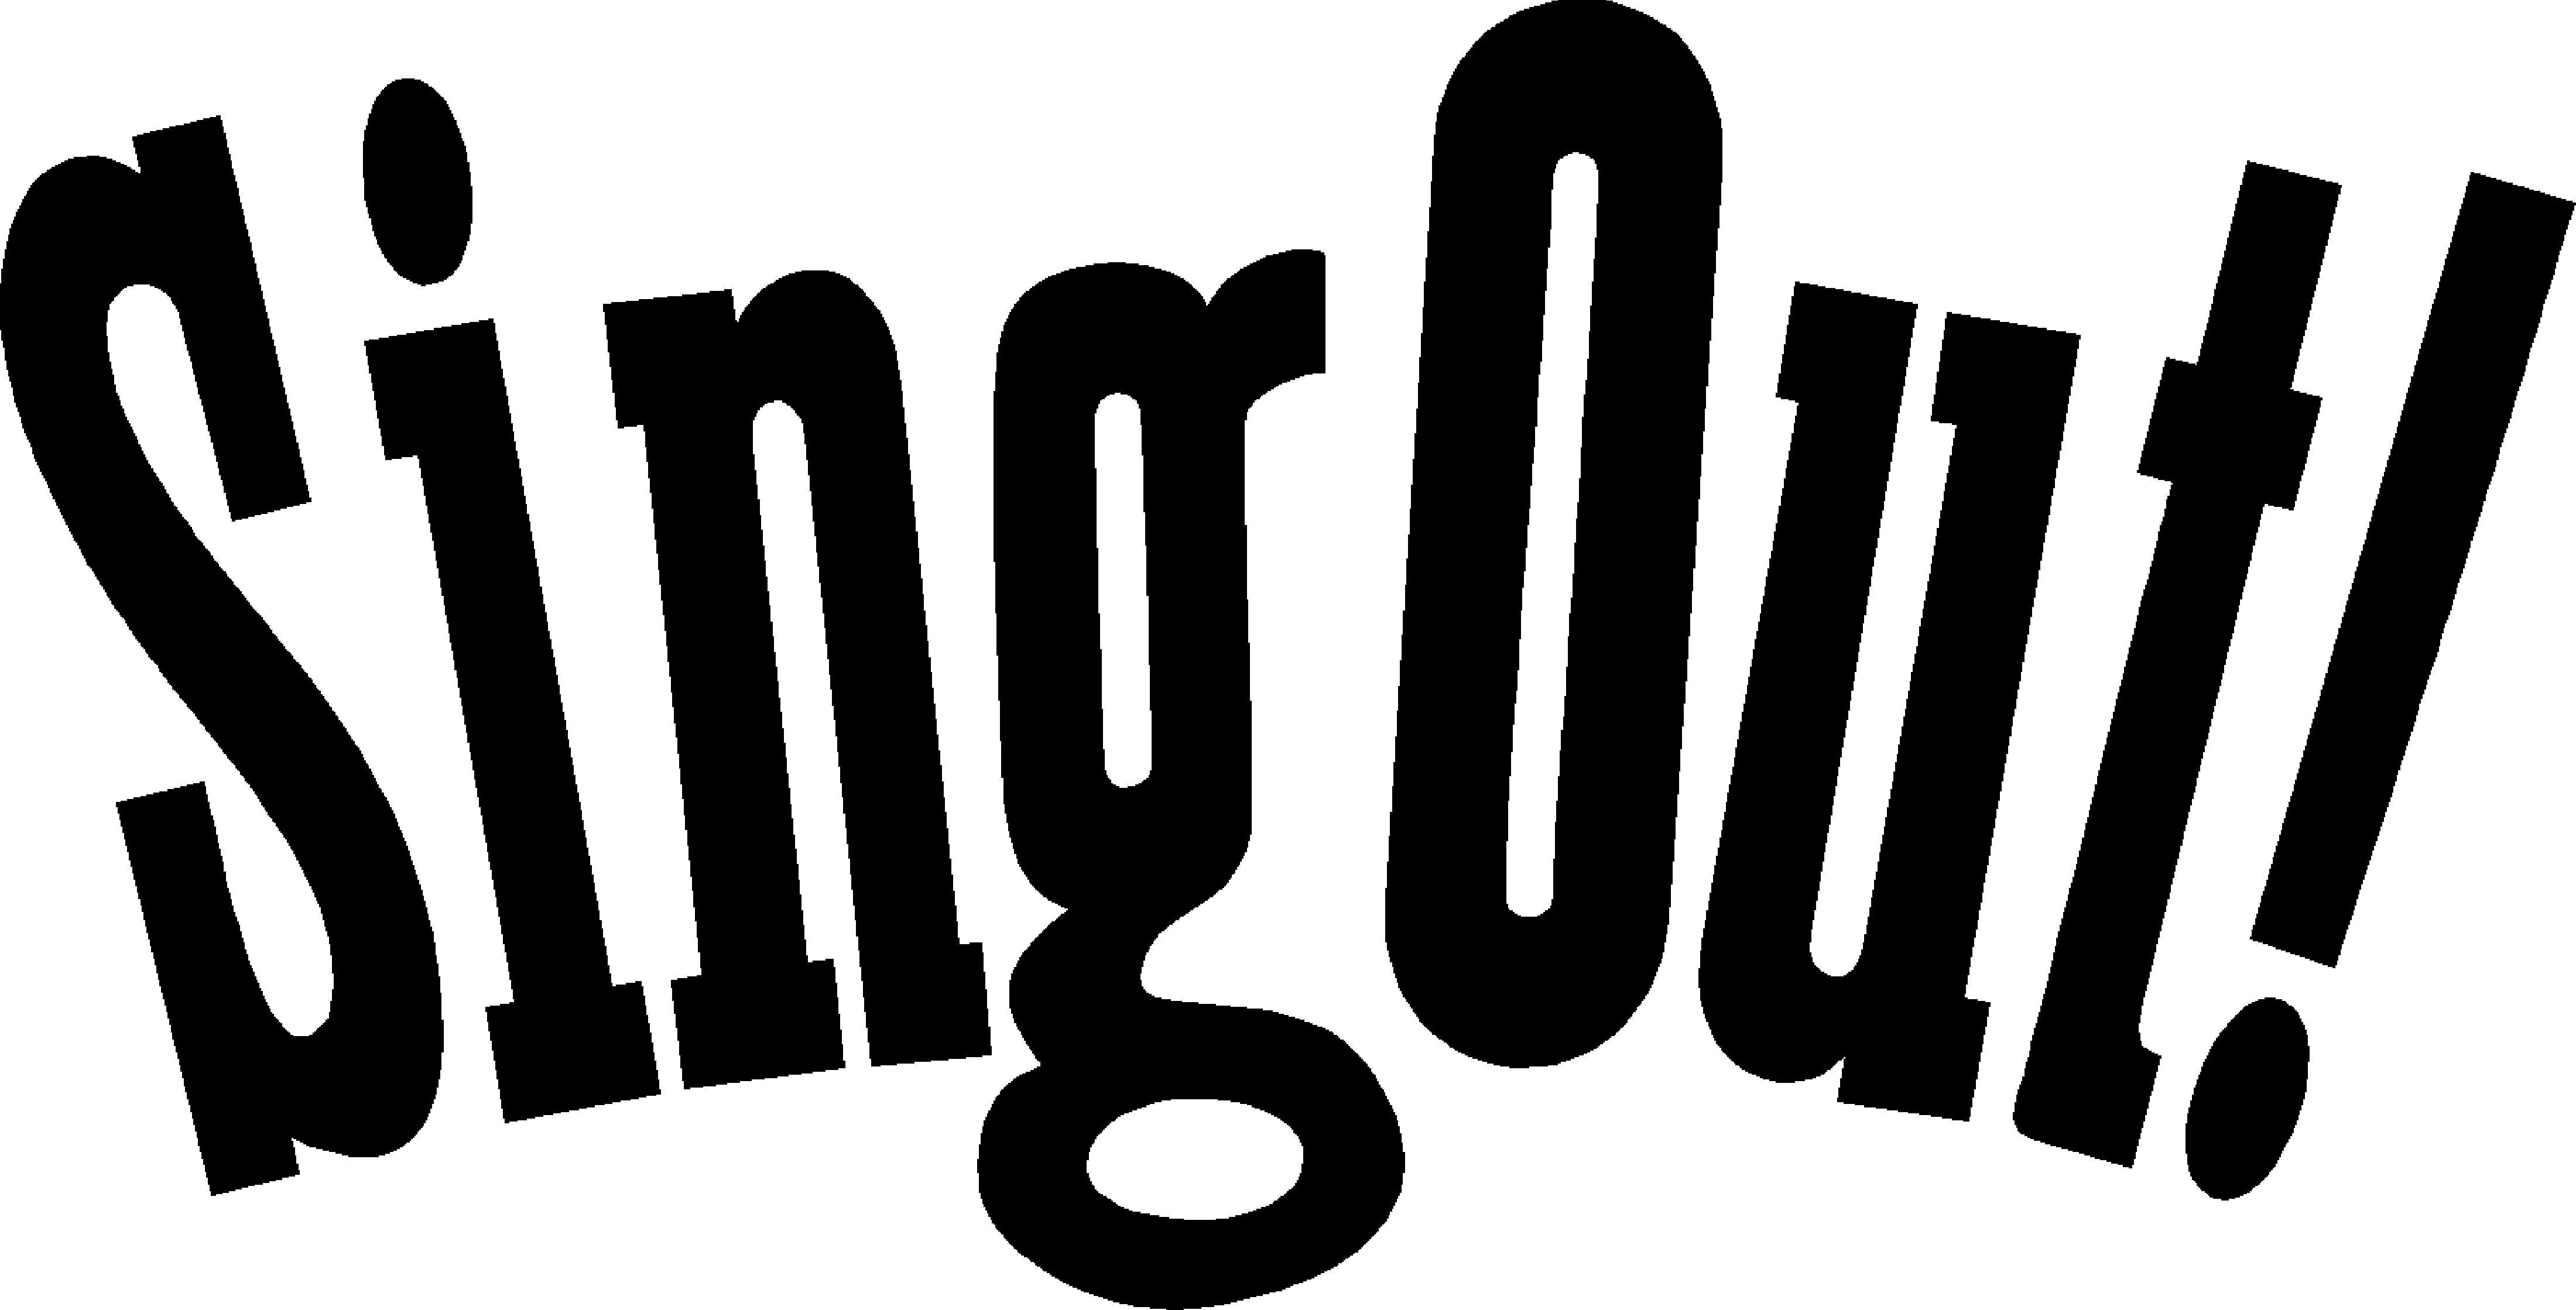 Tags - Sing Out!